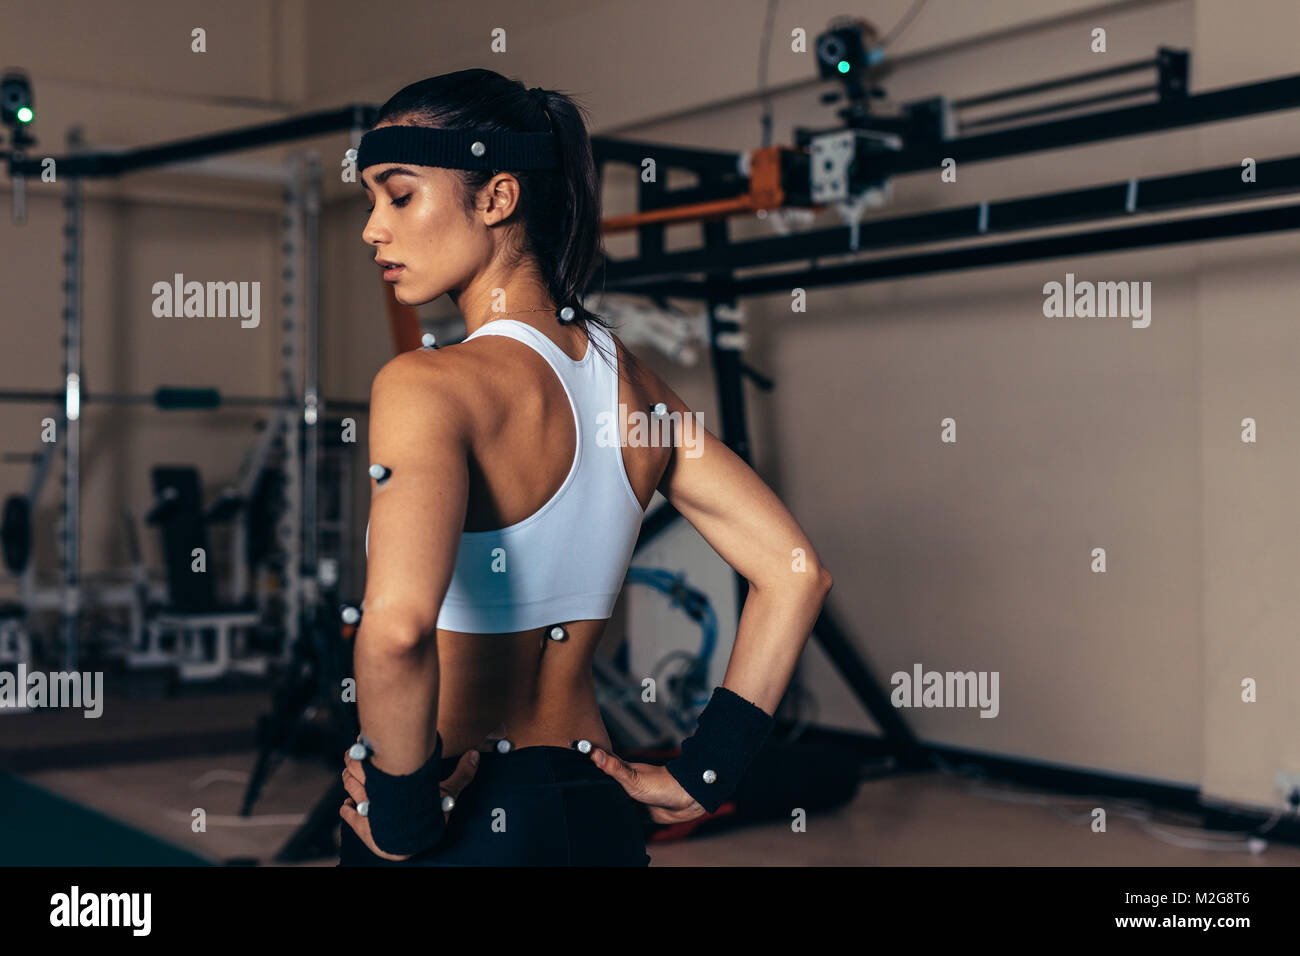 Sportswoman with motion capture sensors on her body to